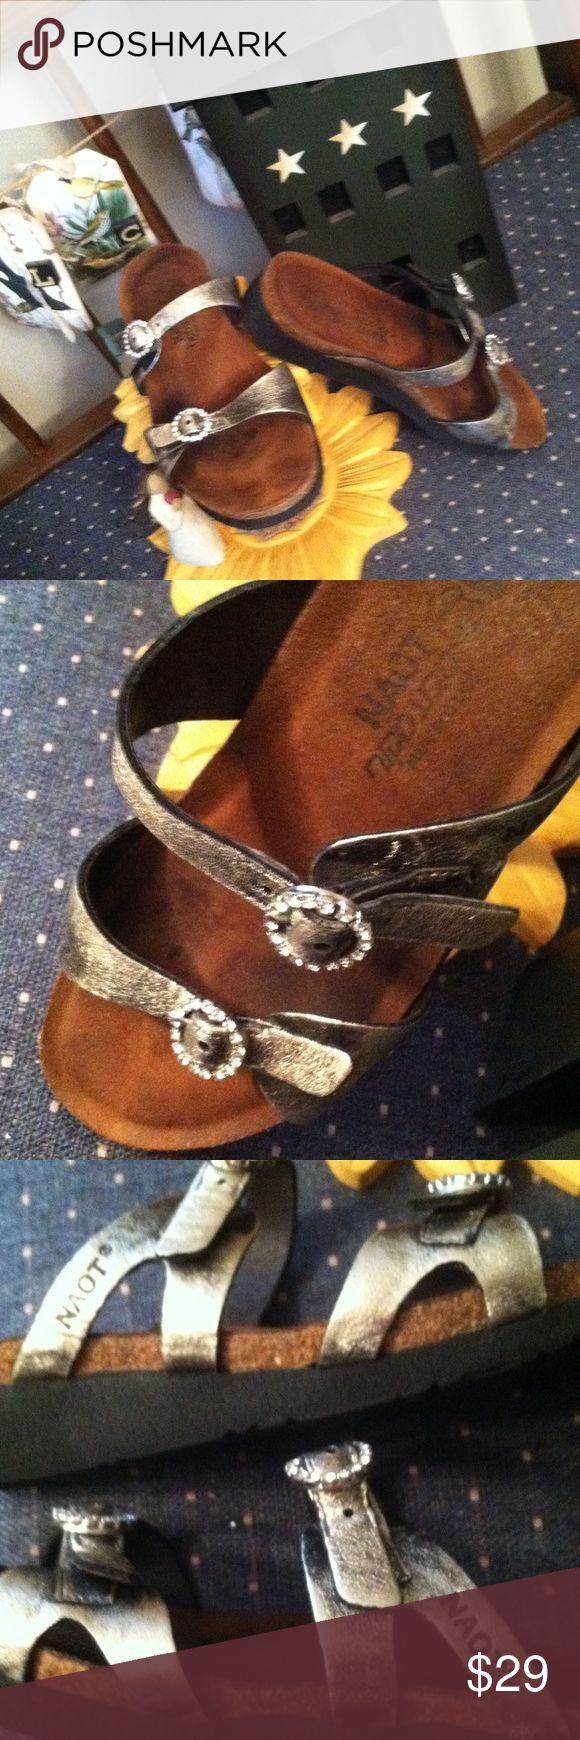 NATO sz 38 pewter sandals Awesome shoes. Fantastic price. Pewter sandals with bling naot Shoes Sandals